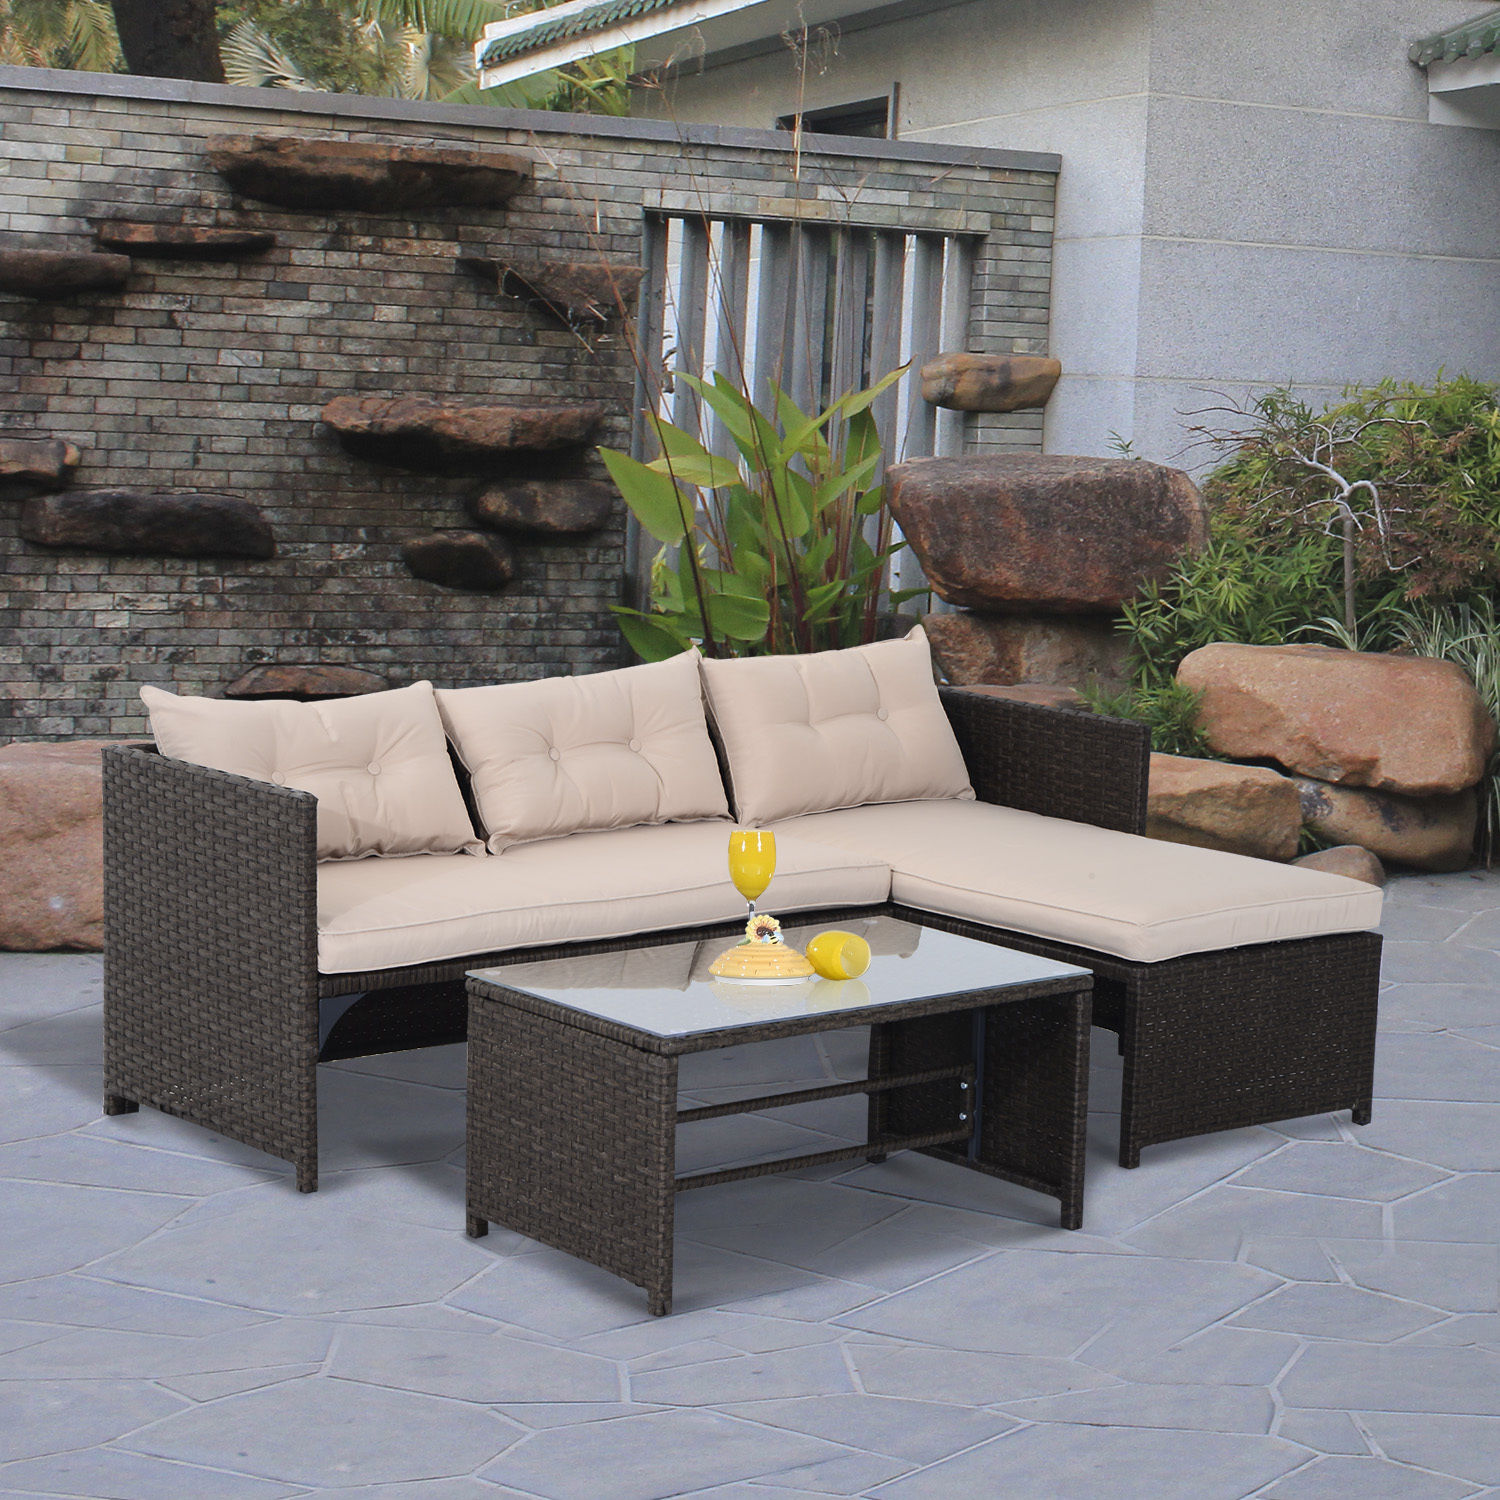 Rattan 3 Piece Sofa Details About 3pc Patio Rattan Wicker Sofa Set Cushined Couch Furniture Outdoor Garden